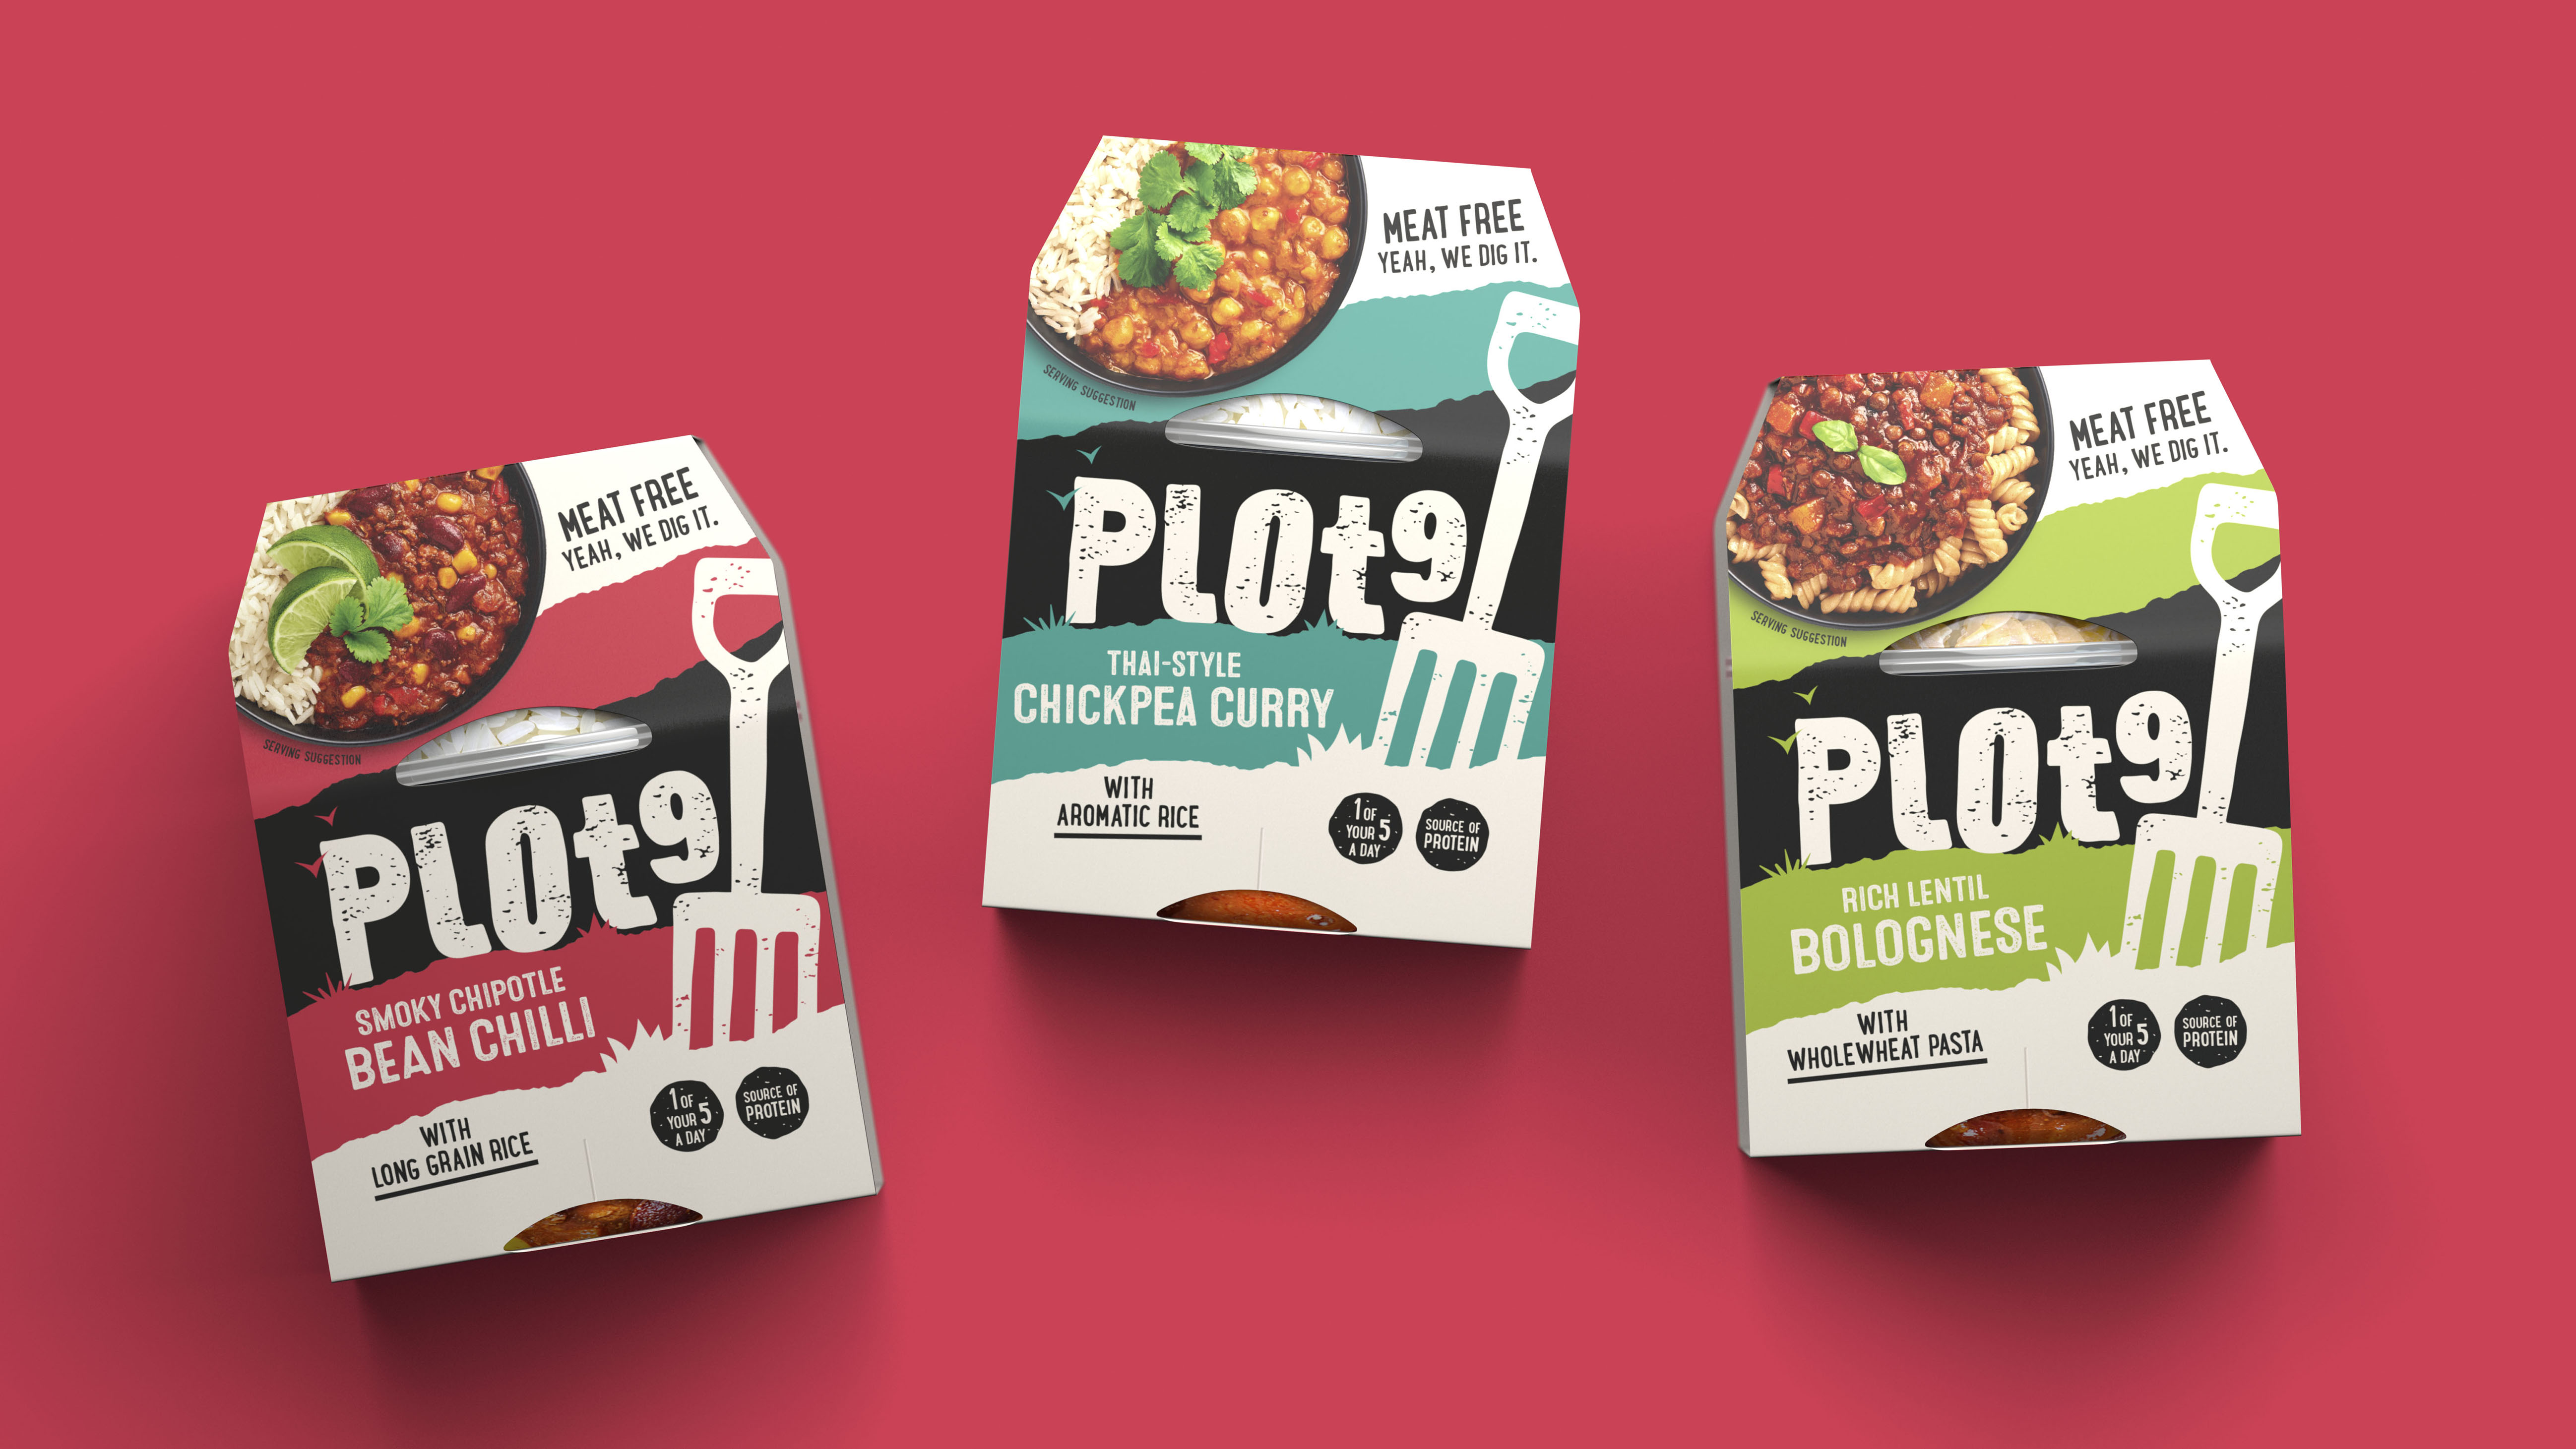 Princes Ltd. Partners with BrandOpus to Create Its First Fully Plant-Based Brand, Plot 9